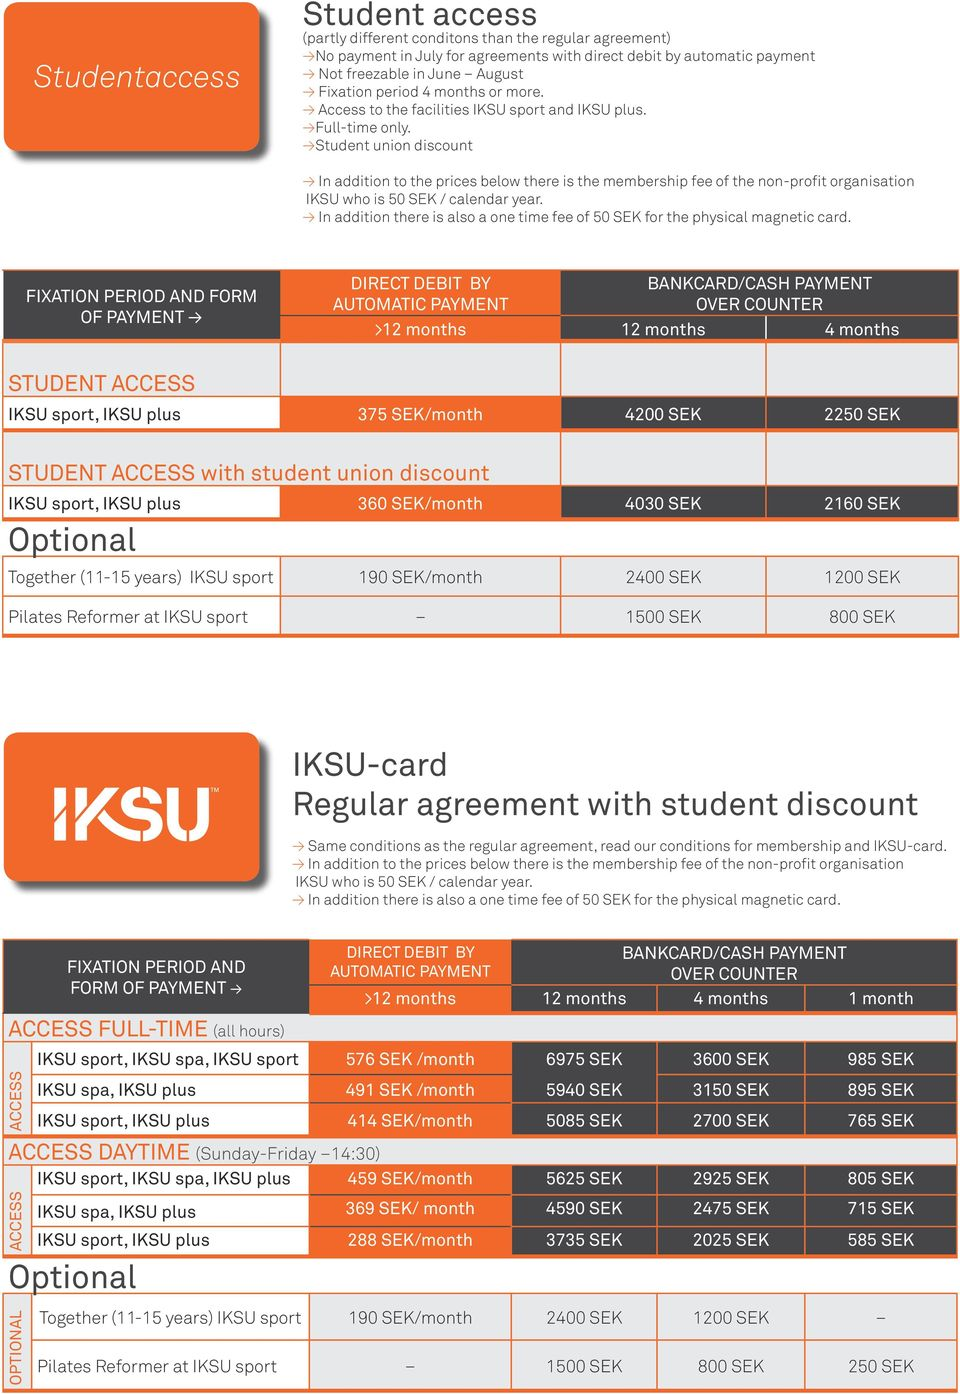 Student union discount In addition to the prices below there is the membership fee of the non-profit organisation IKSU who is 50 SEK / calendar year.